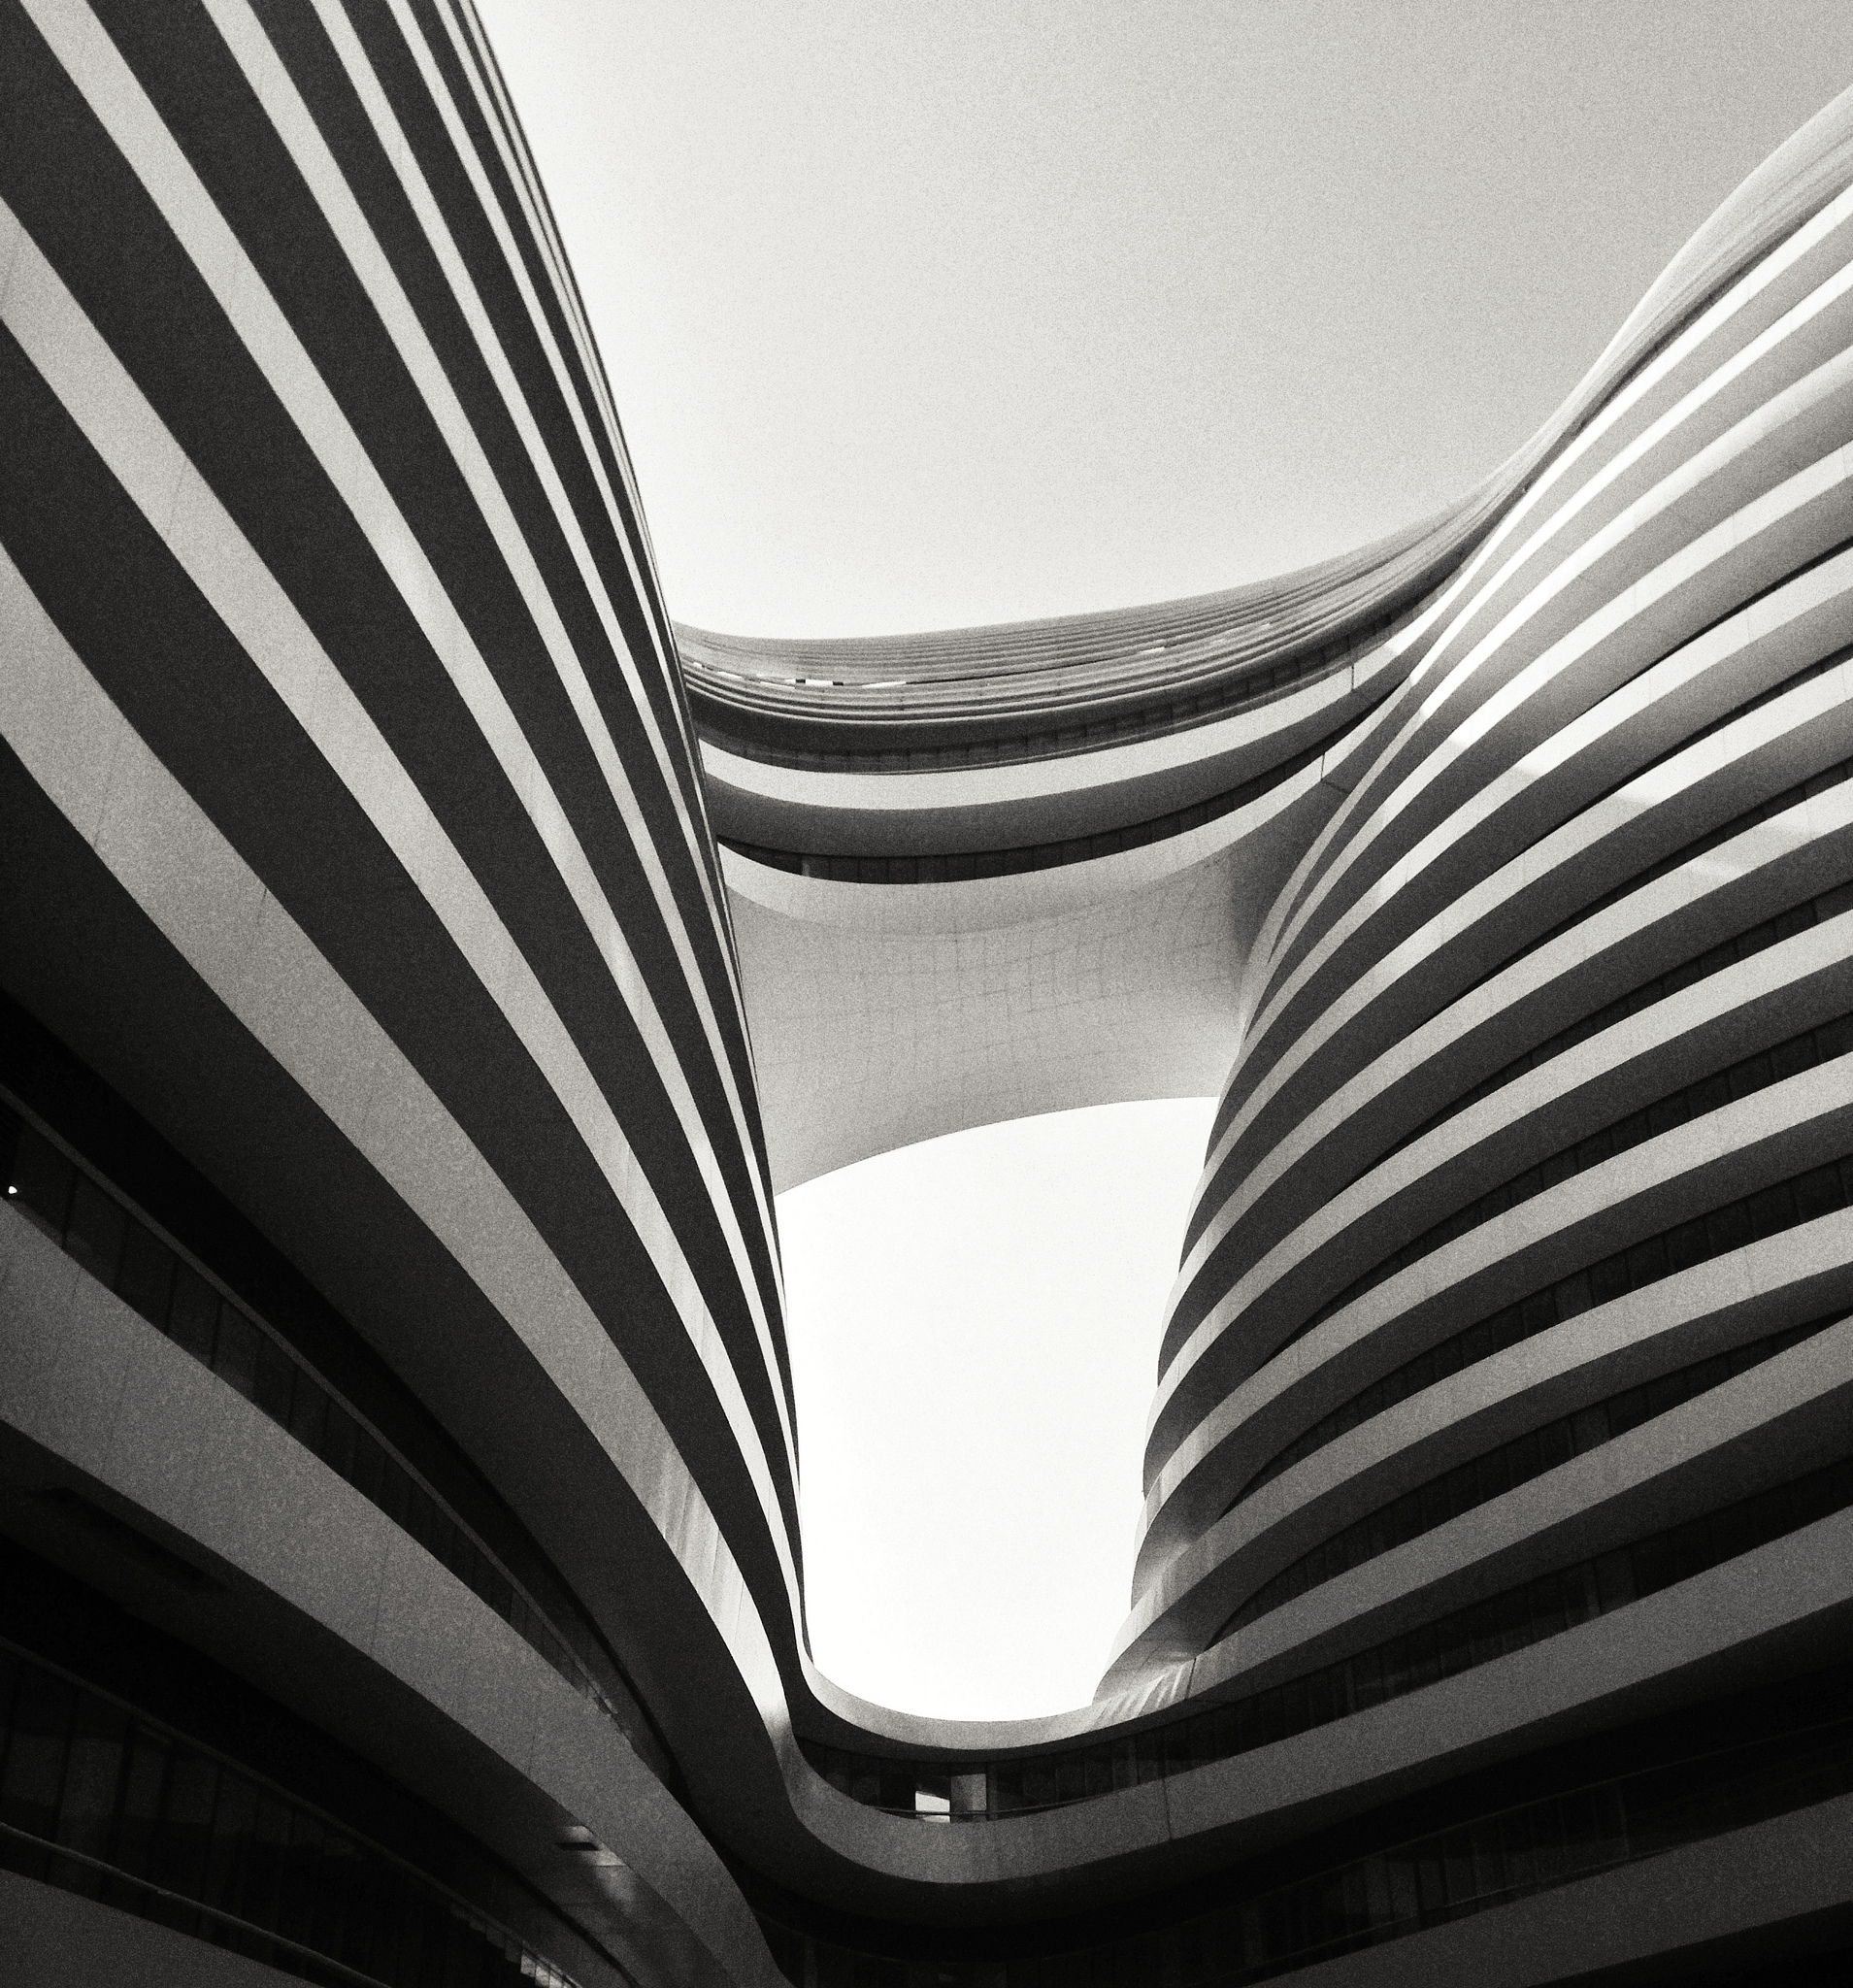 Zaha Hadid's Galaxy SOHO development in Beijing, China